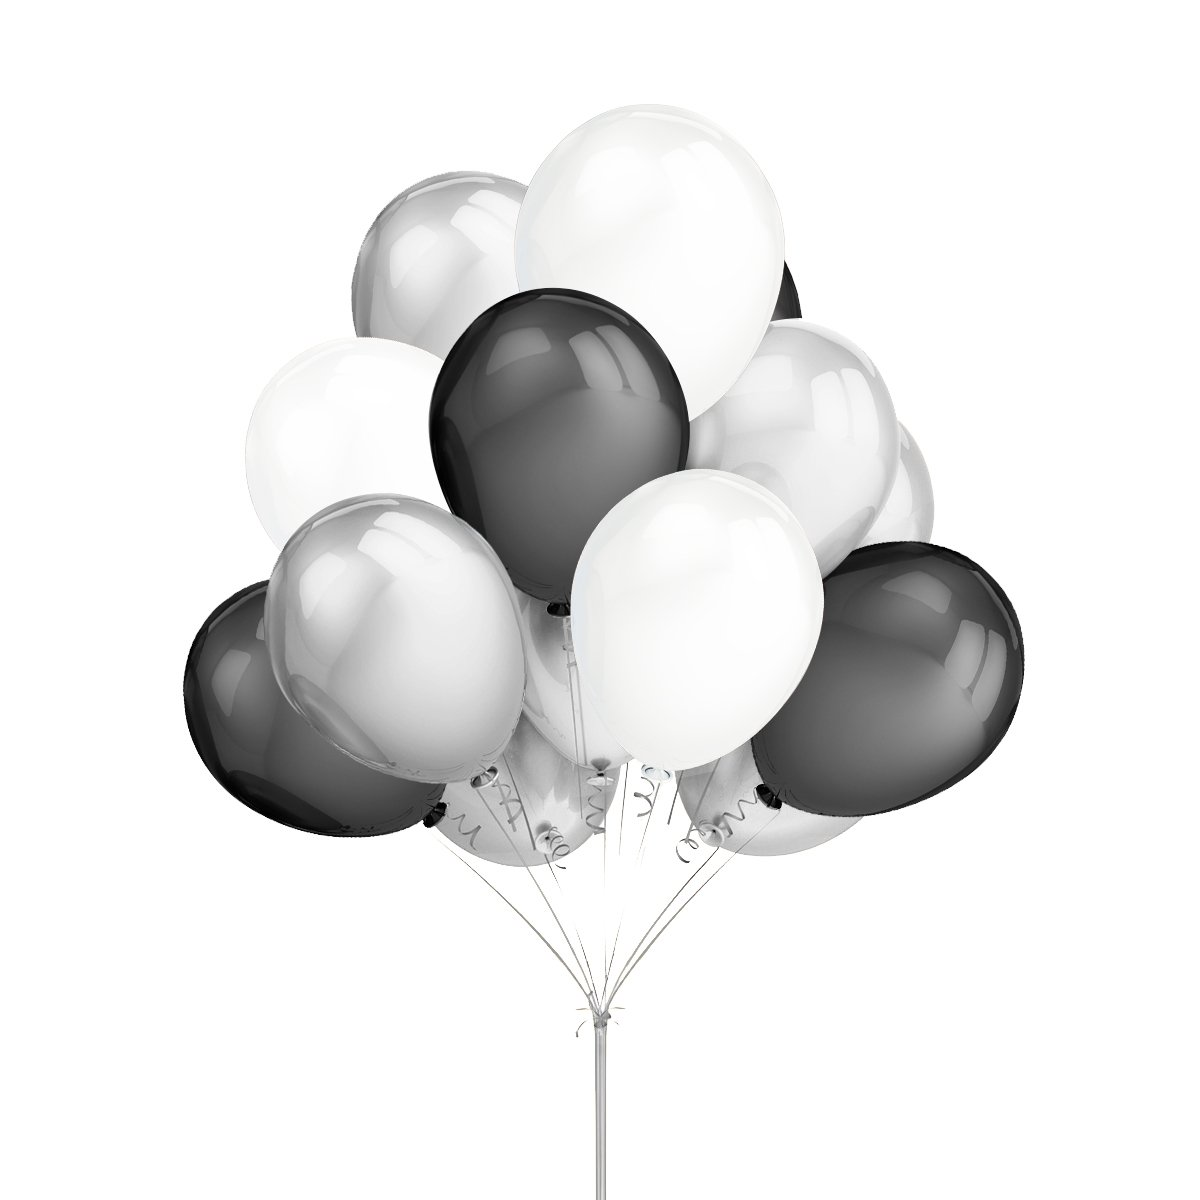 LeeSky 100Pcs 12 Inches 2.8g/pcs Thicken Round Metallic Pearlescent Latex Balloons Silver & Black & White Latex Party Balloons,Bachelorette Wedding Baby Shower Hawaii Party Decoration Supplies